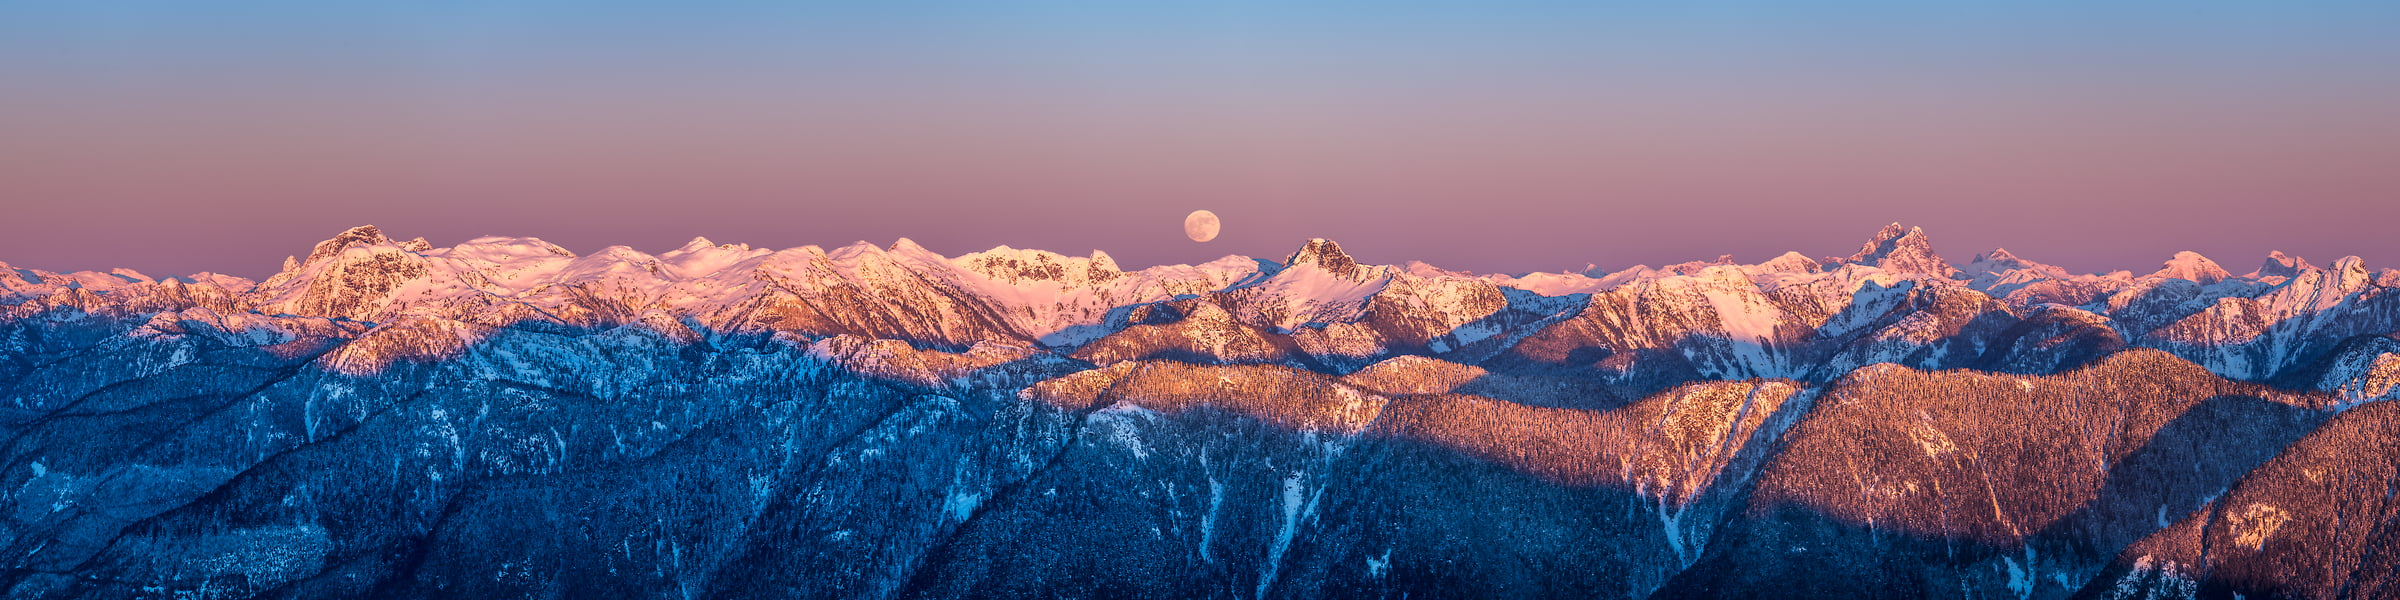 169 megapixels! A very high resolution, large-format VAST photo print of mountains, sunset, dusk, the moon, First Peak, and Mount Seymour Provincial Park; fine art landscape photo created by Tim Shields in Vancouver, British Columbia